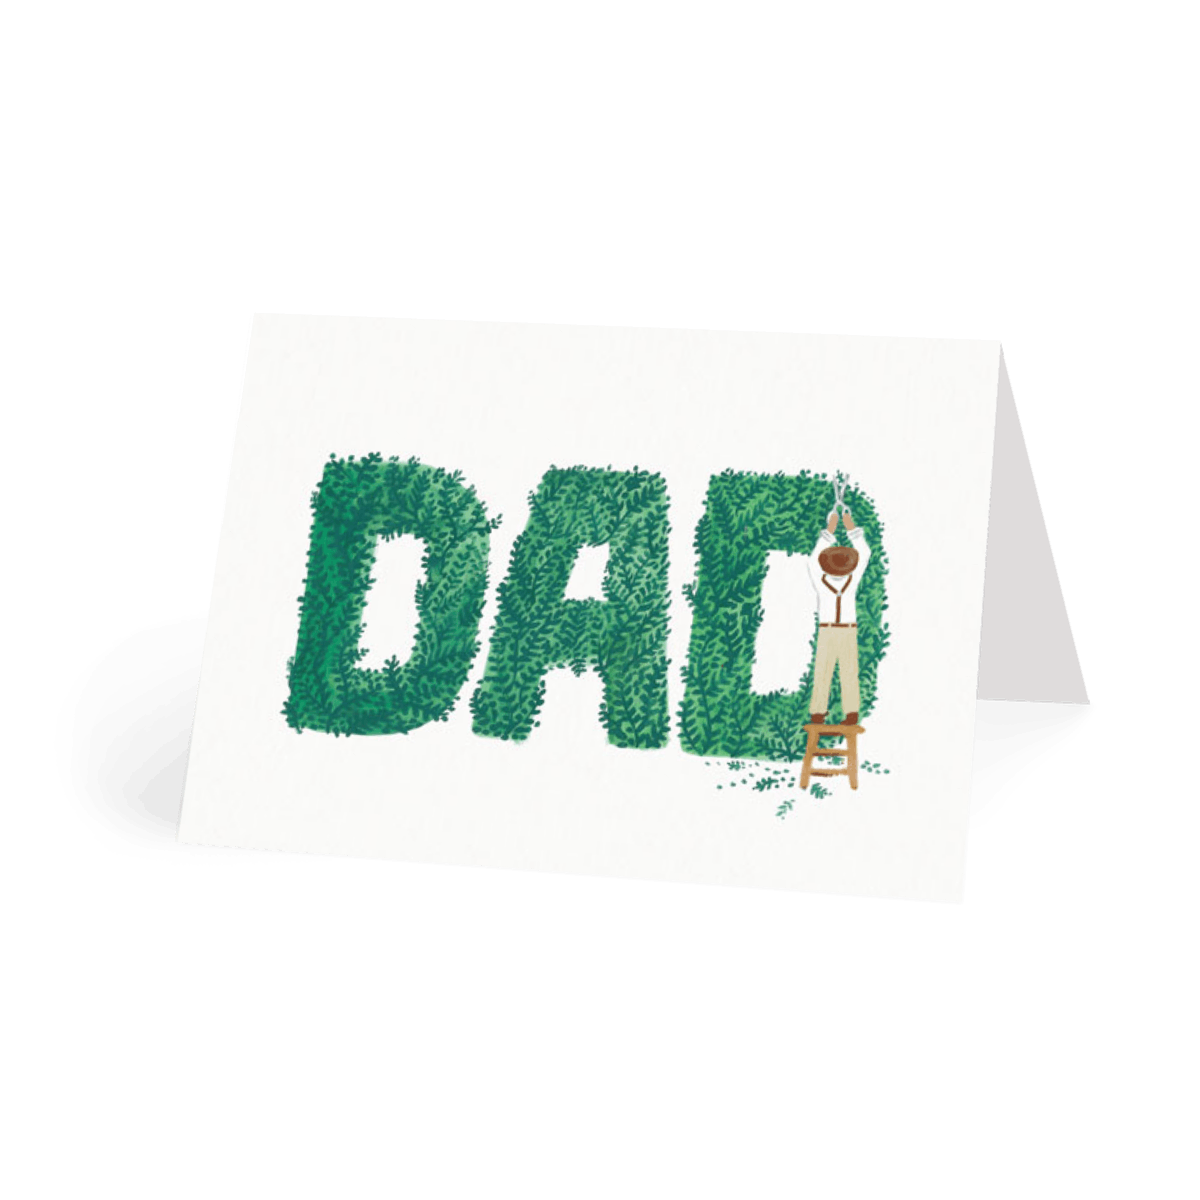 Https%3a%2f%2fwww.papier.com%2fproduct image%2f34151%2f14%2ftopiary dad 8535 front 1519147190.png?ixlib=rb 1.1